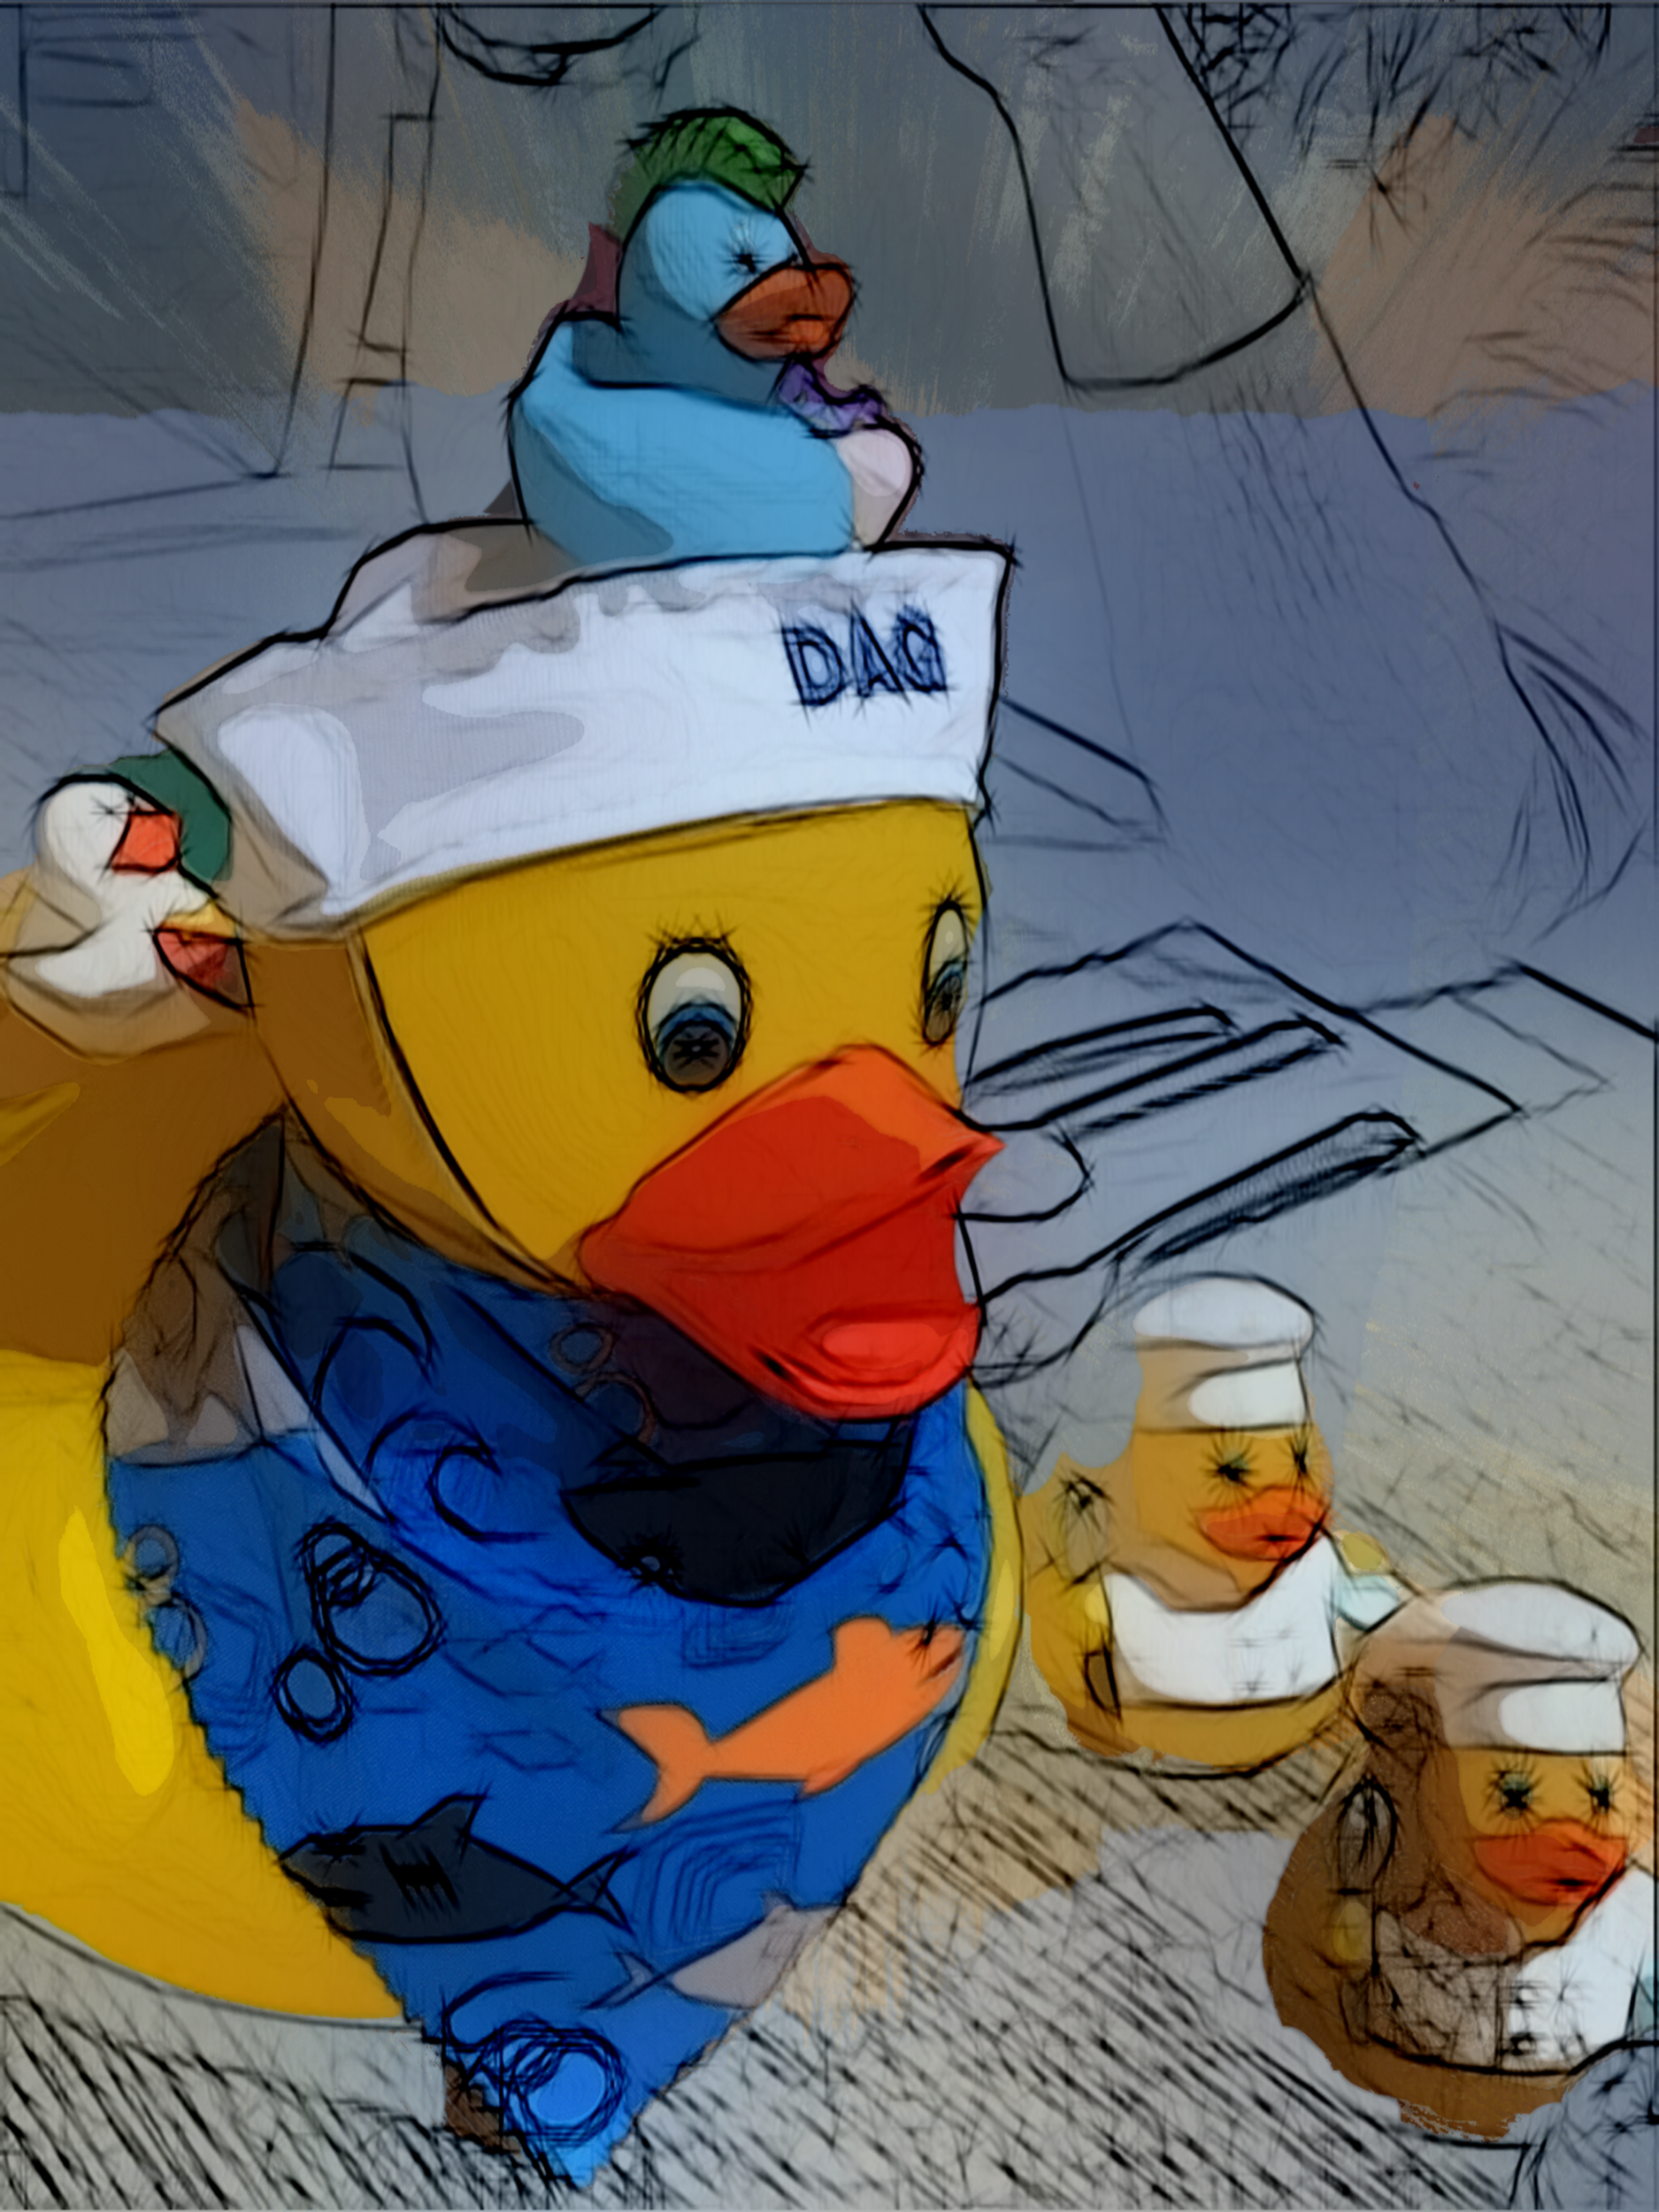 May 7, 2019 - A ducky day was had by all! [iColorama]